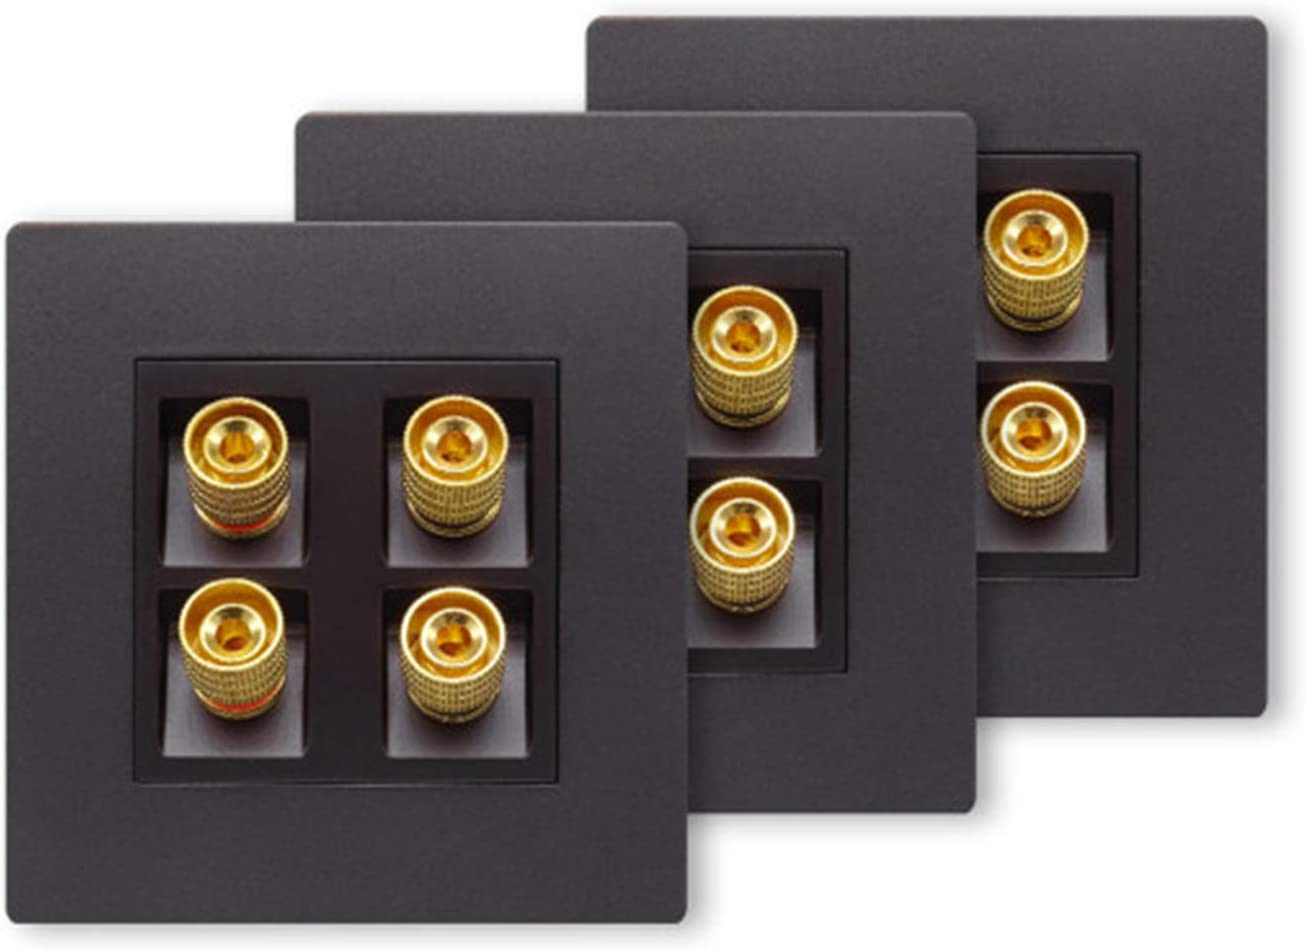 Insputer Audio Wall Plate Surround Sound System Home Theater Wall Plate Audio Video Copper Banana Binding Post Coupler Type Black 4 Speaker Wall Plate 3 Packs